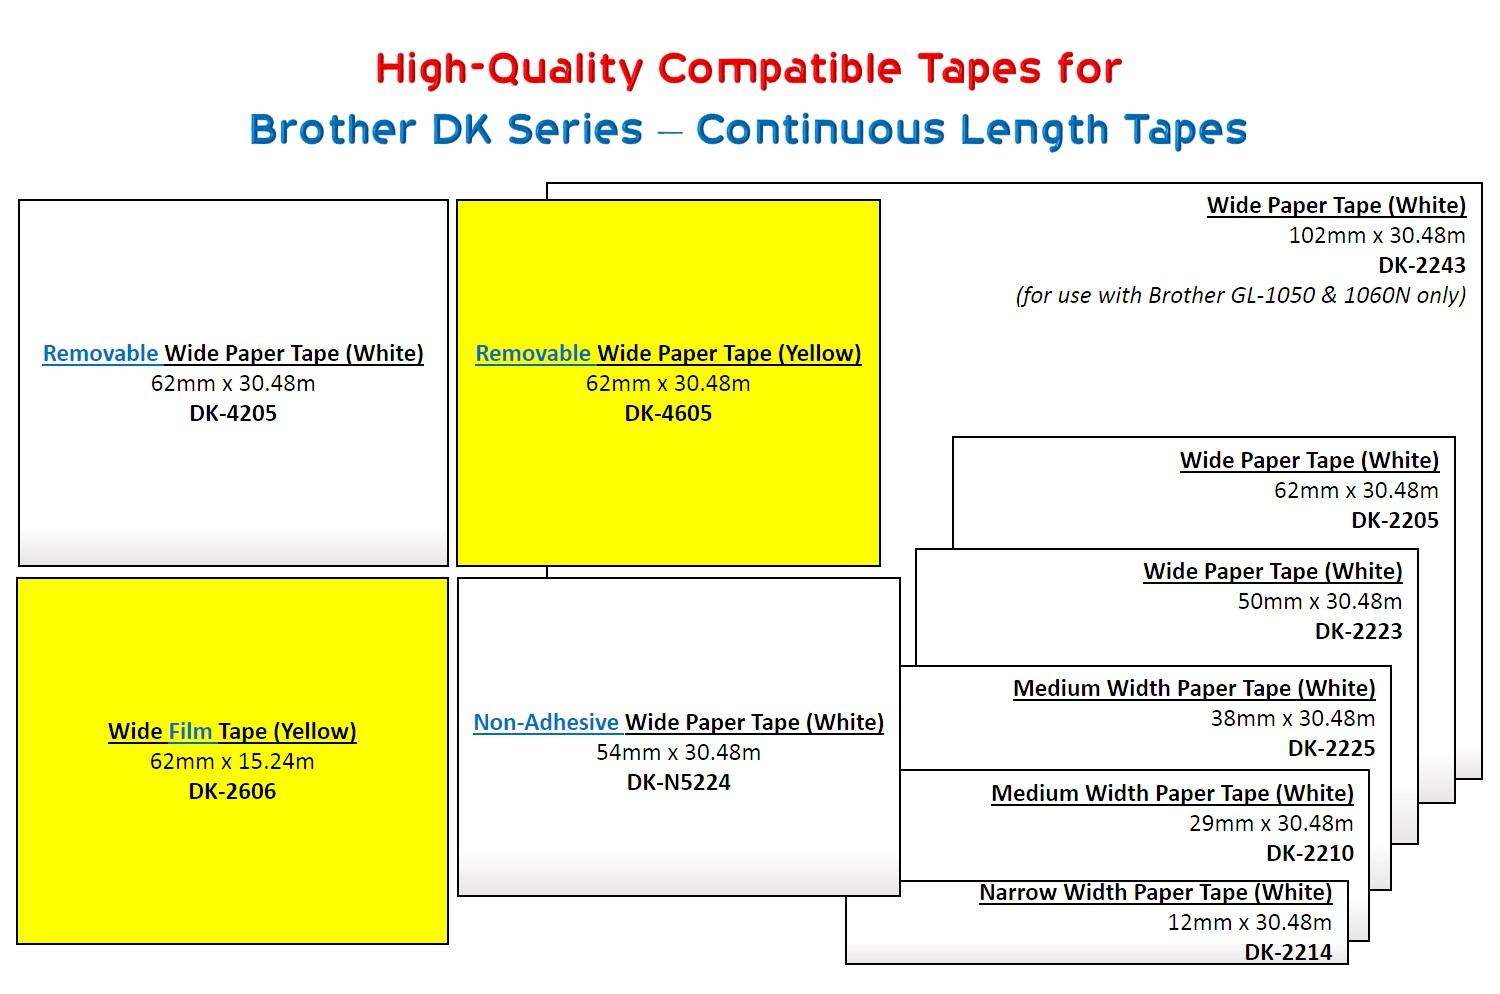 Brother DK Series Continuous length tapes 2